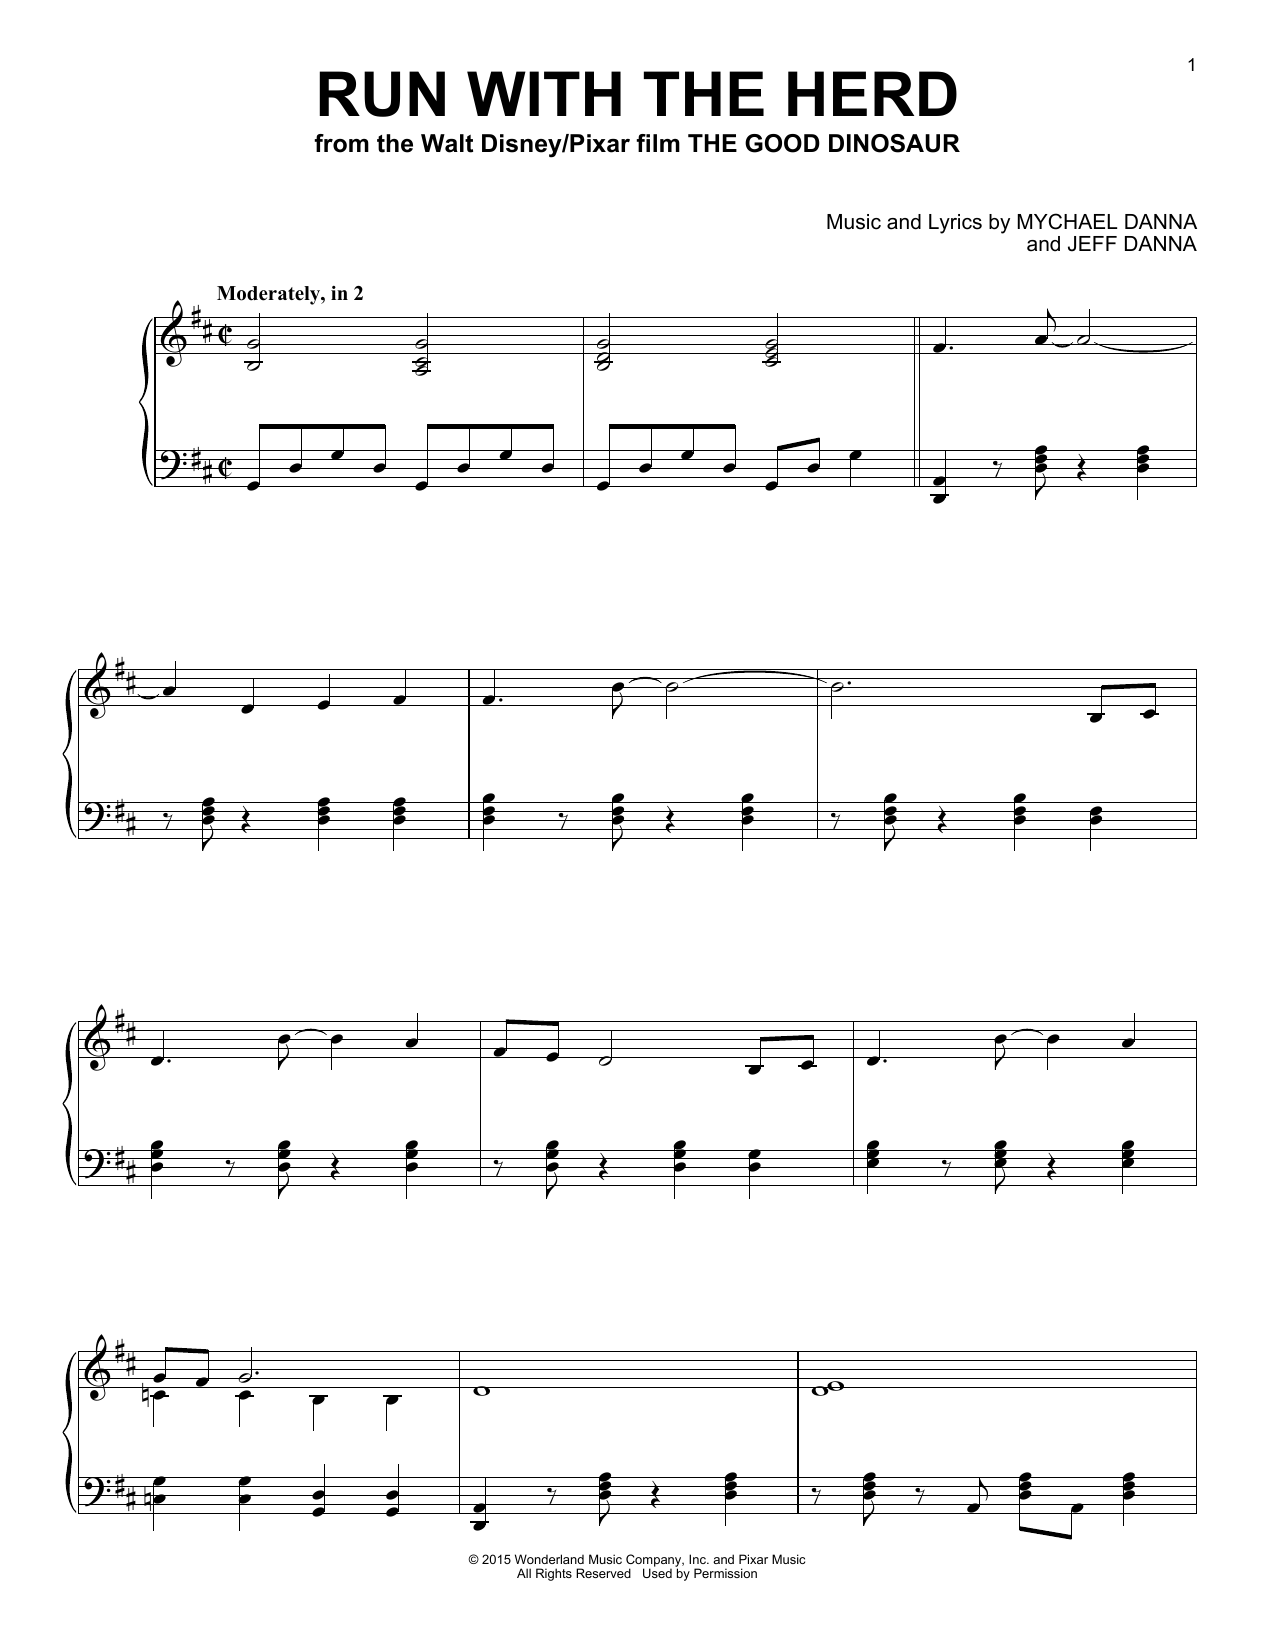 Mychael & Jeff Danna Run With The Herd sheet music notes and chords